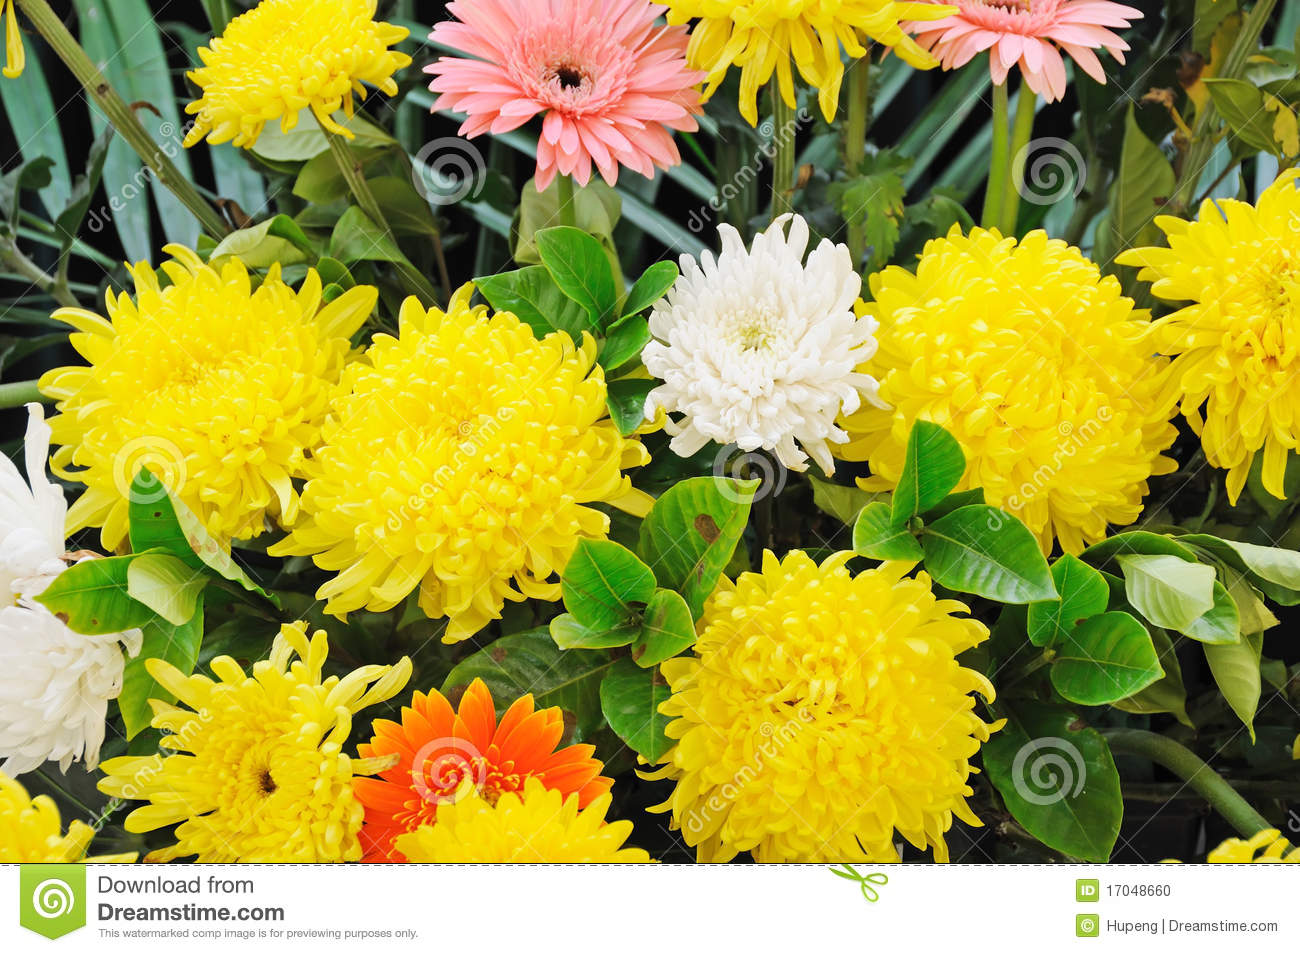 Funeral flowers stock images 5149 photos funeral flowers for condolences chinese funeral flowers for condolenceswhite and yellow chrysanthemum stock izmirmasajfo Choice Image